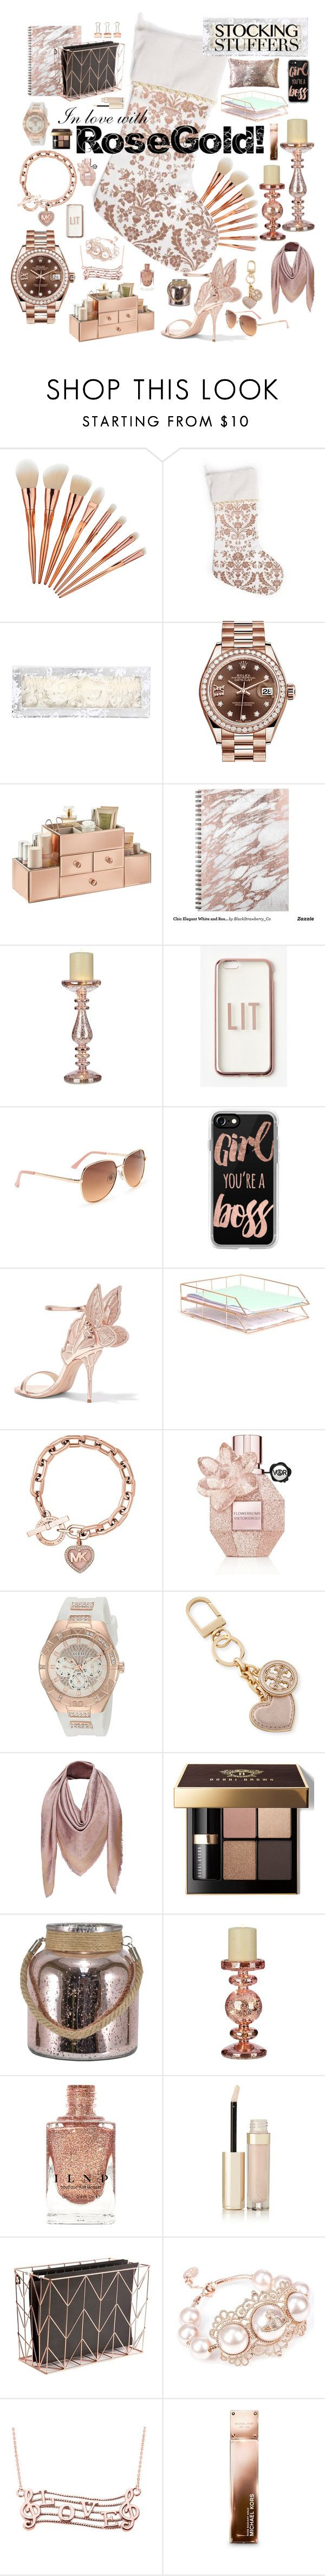 """""""In Love With Rose Gold!"""" by ladydivaboss ❤ liked on Polyvore featuring interior, interiors, interior design, home, home decor, interior decorating, Hanky Panky, Rolex, Missguided and Aéropostale"""